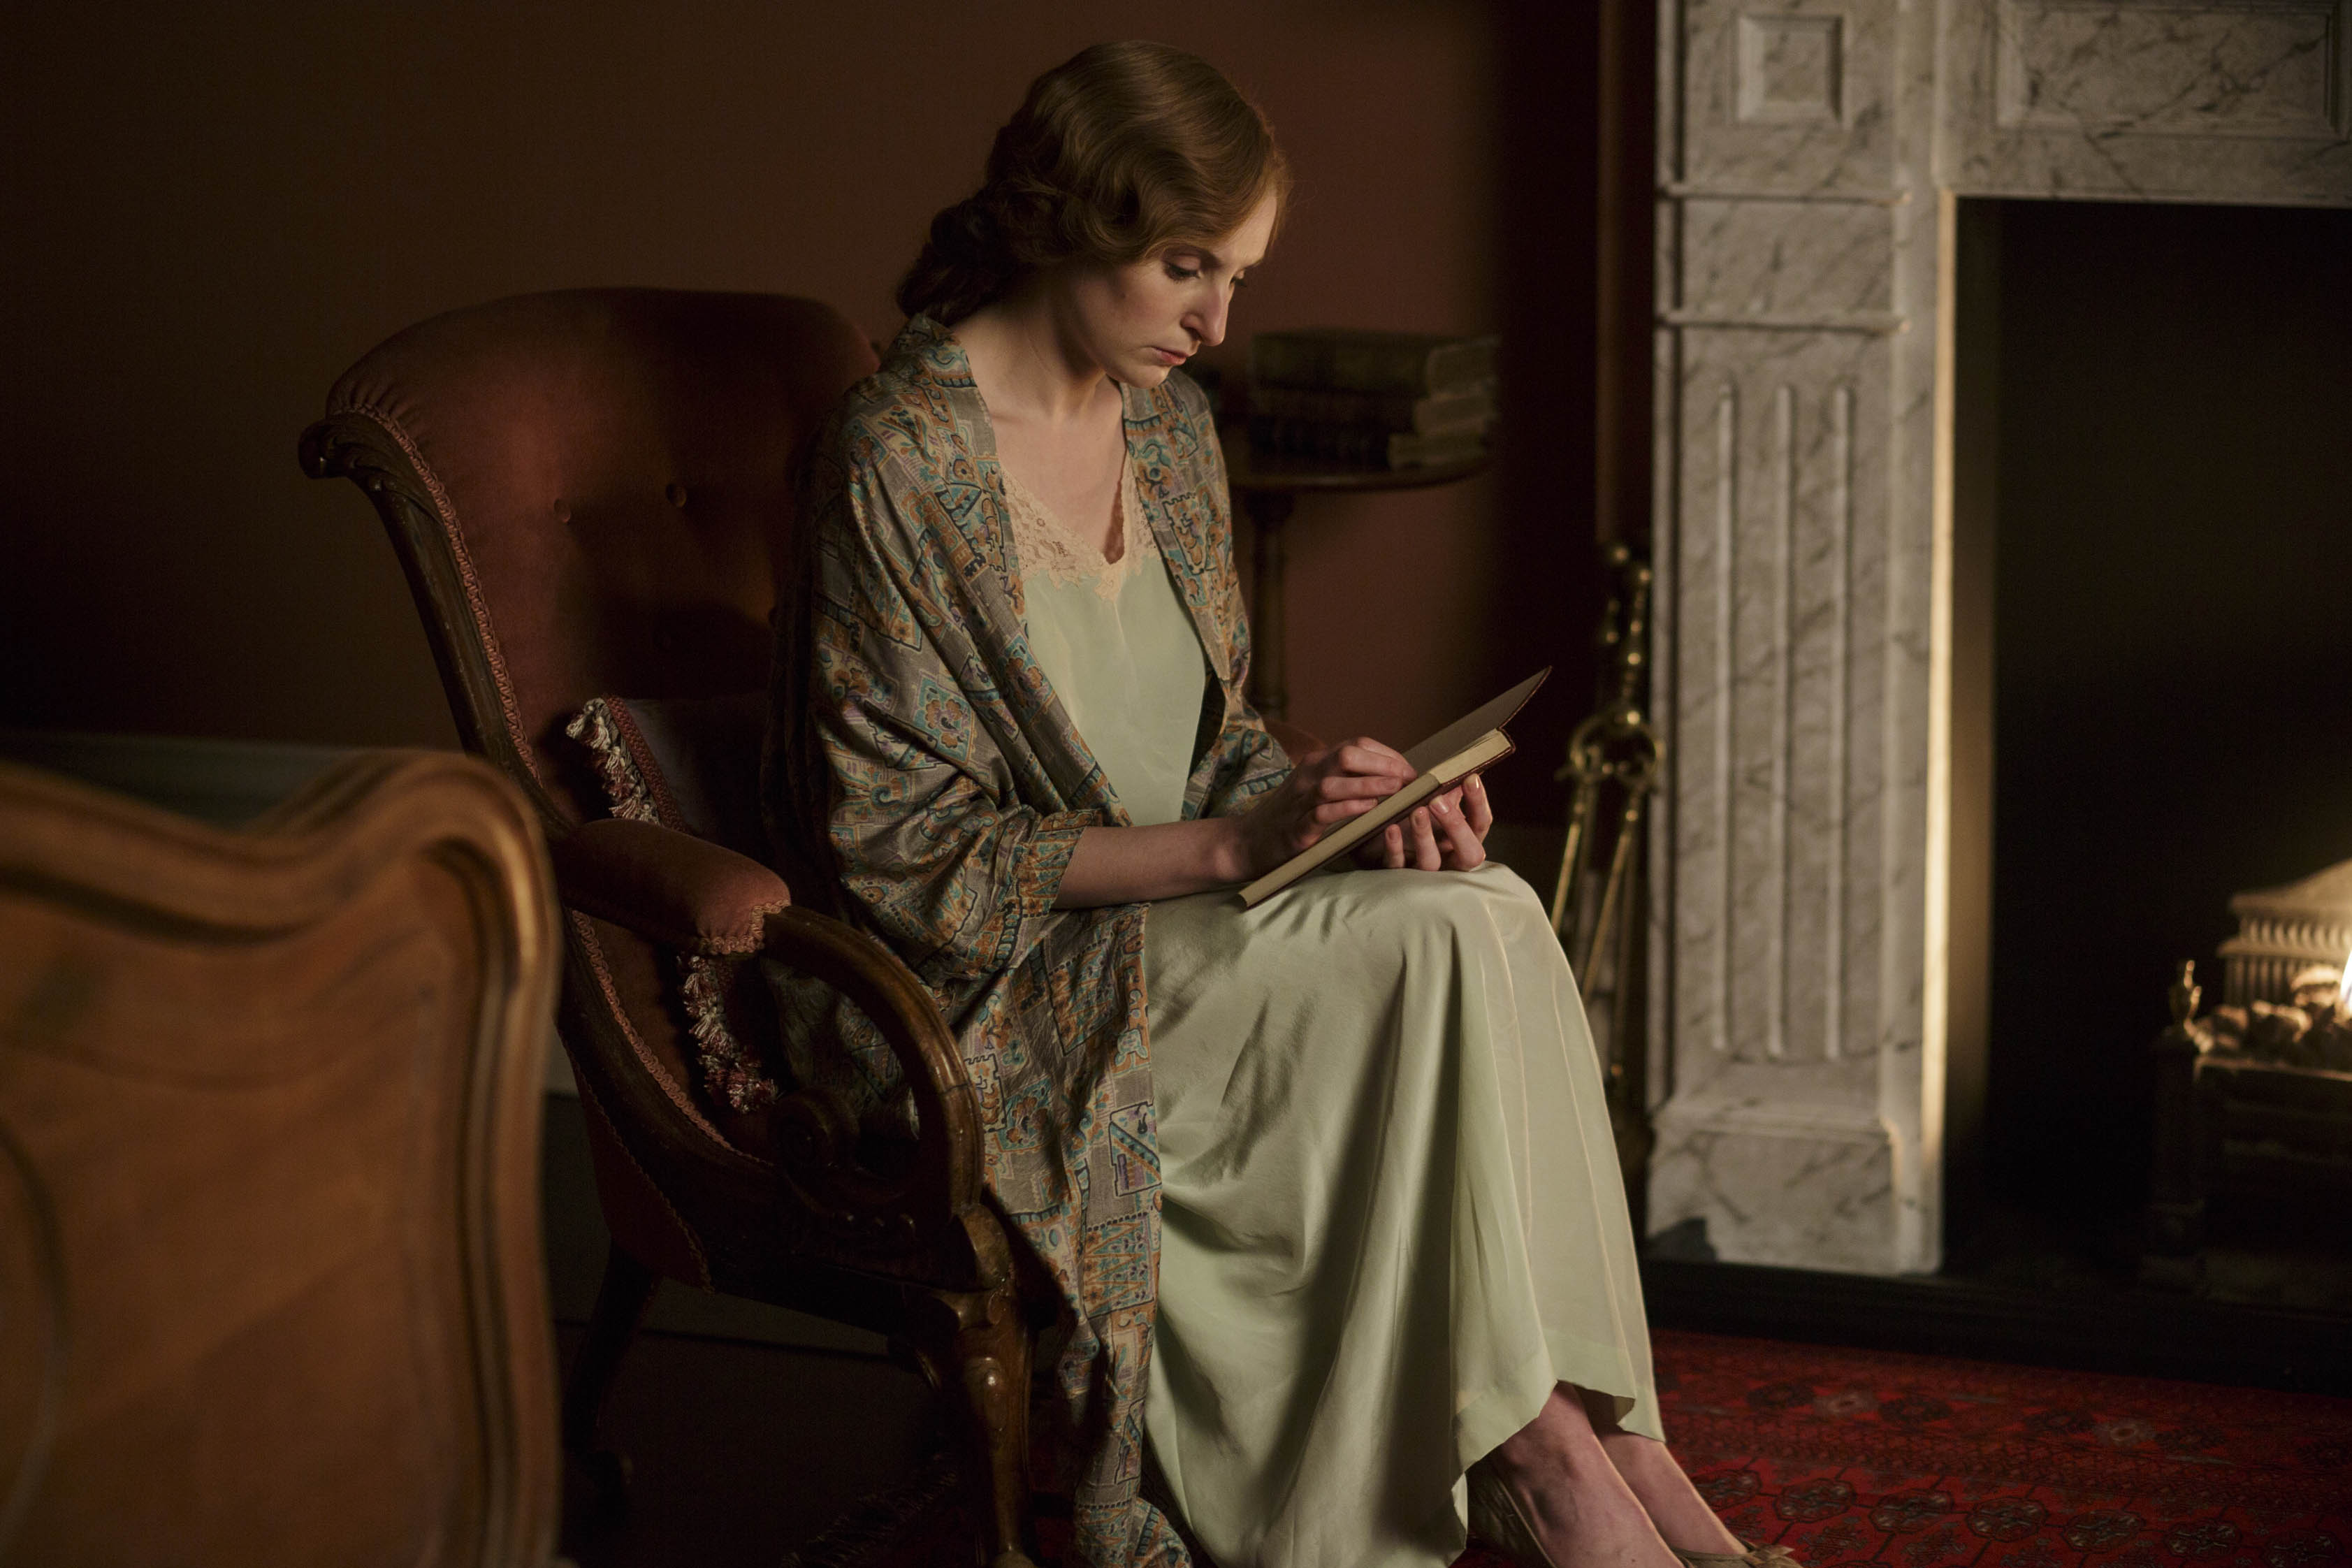 Fifth series of Downton Abbey set to captivate audiences on TV3.